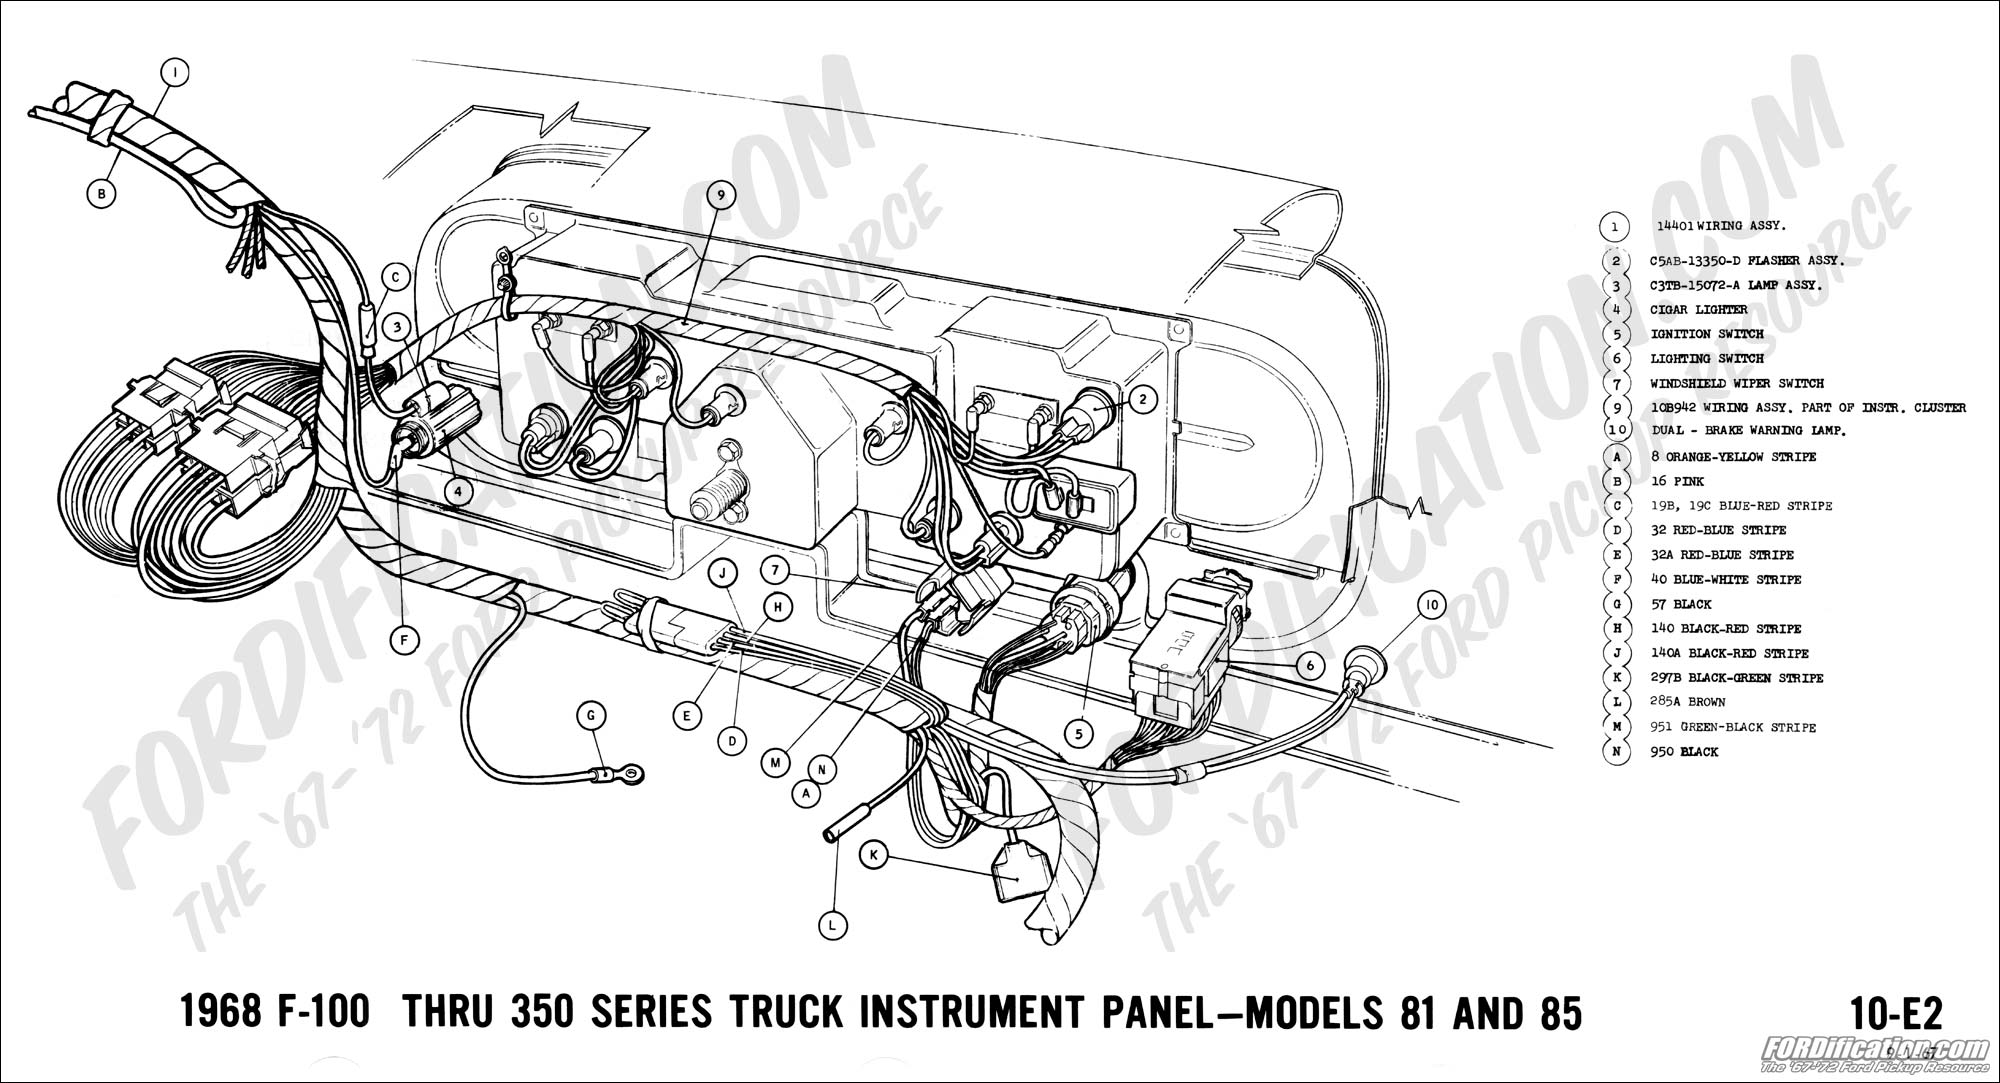 Chevy Impala Wiring Diagram 1964 Mustang Wiring Diagram Wiring Diagram